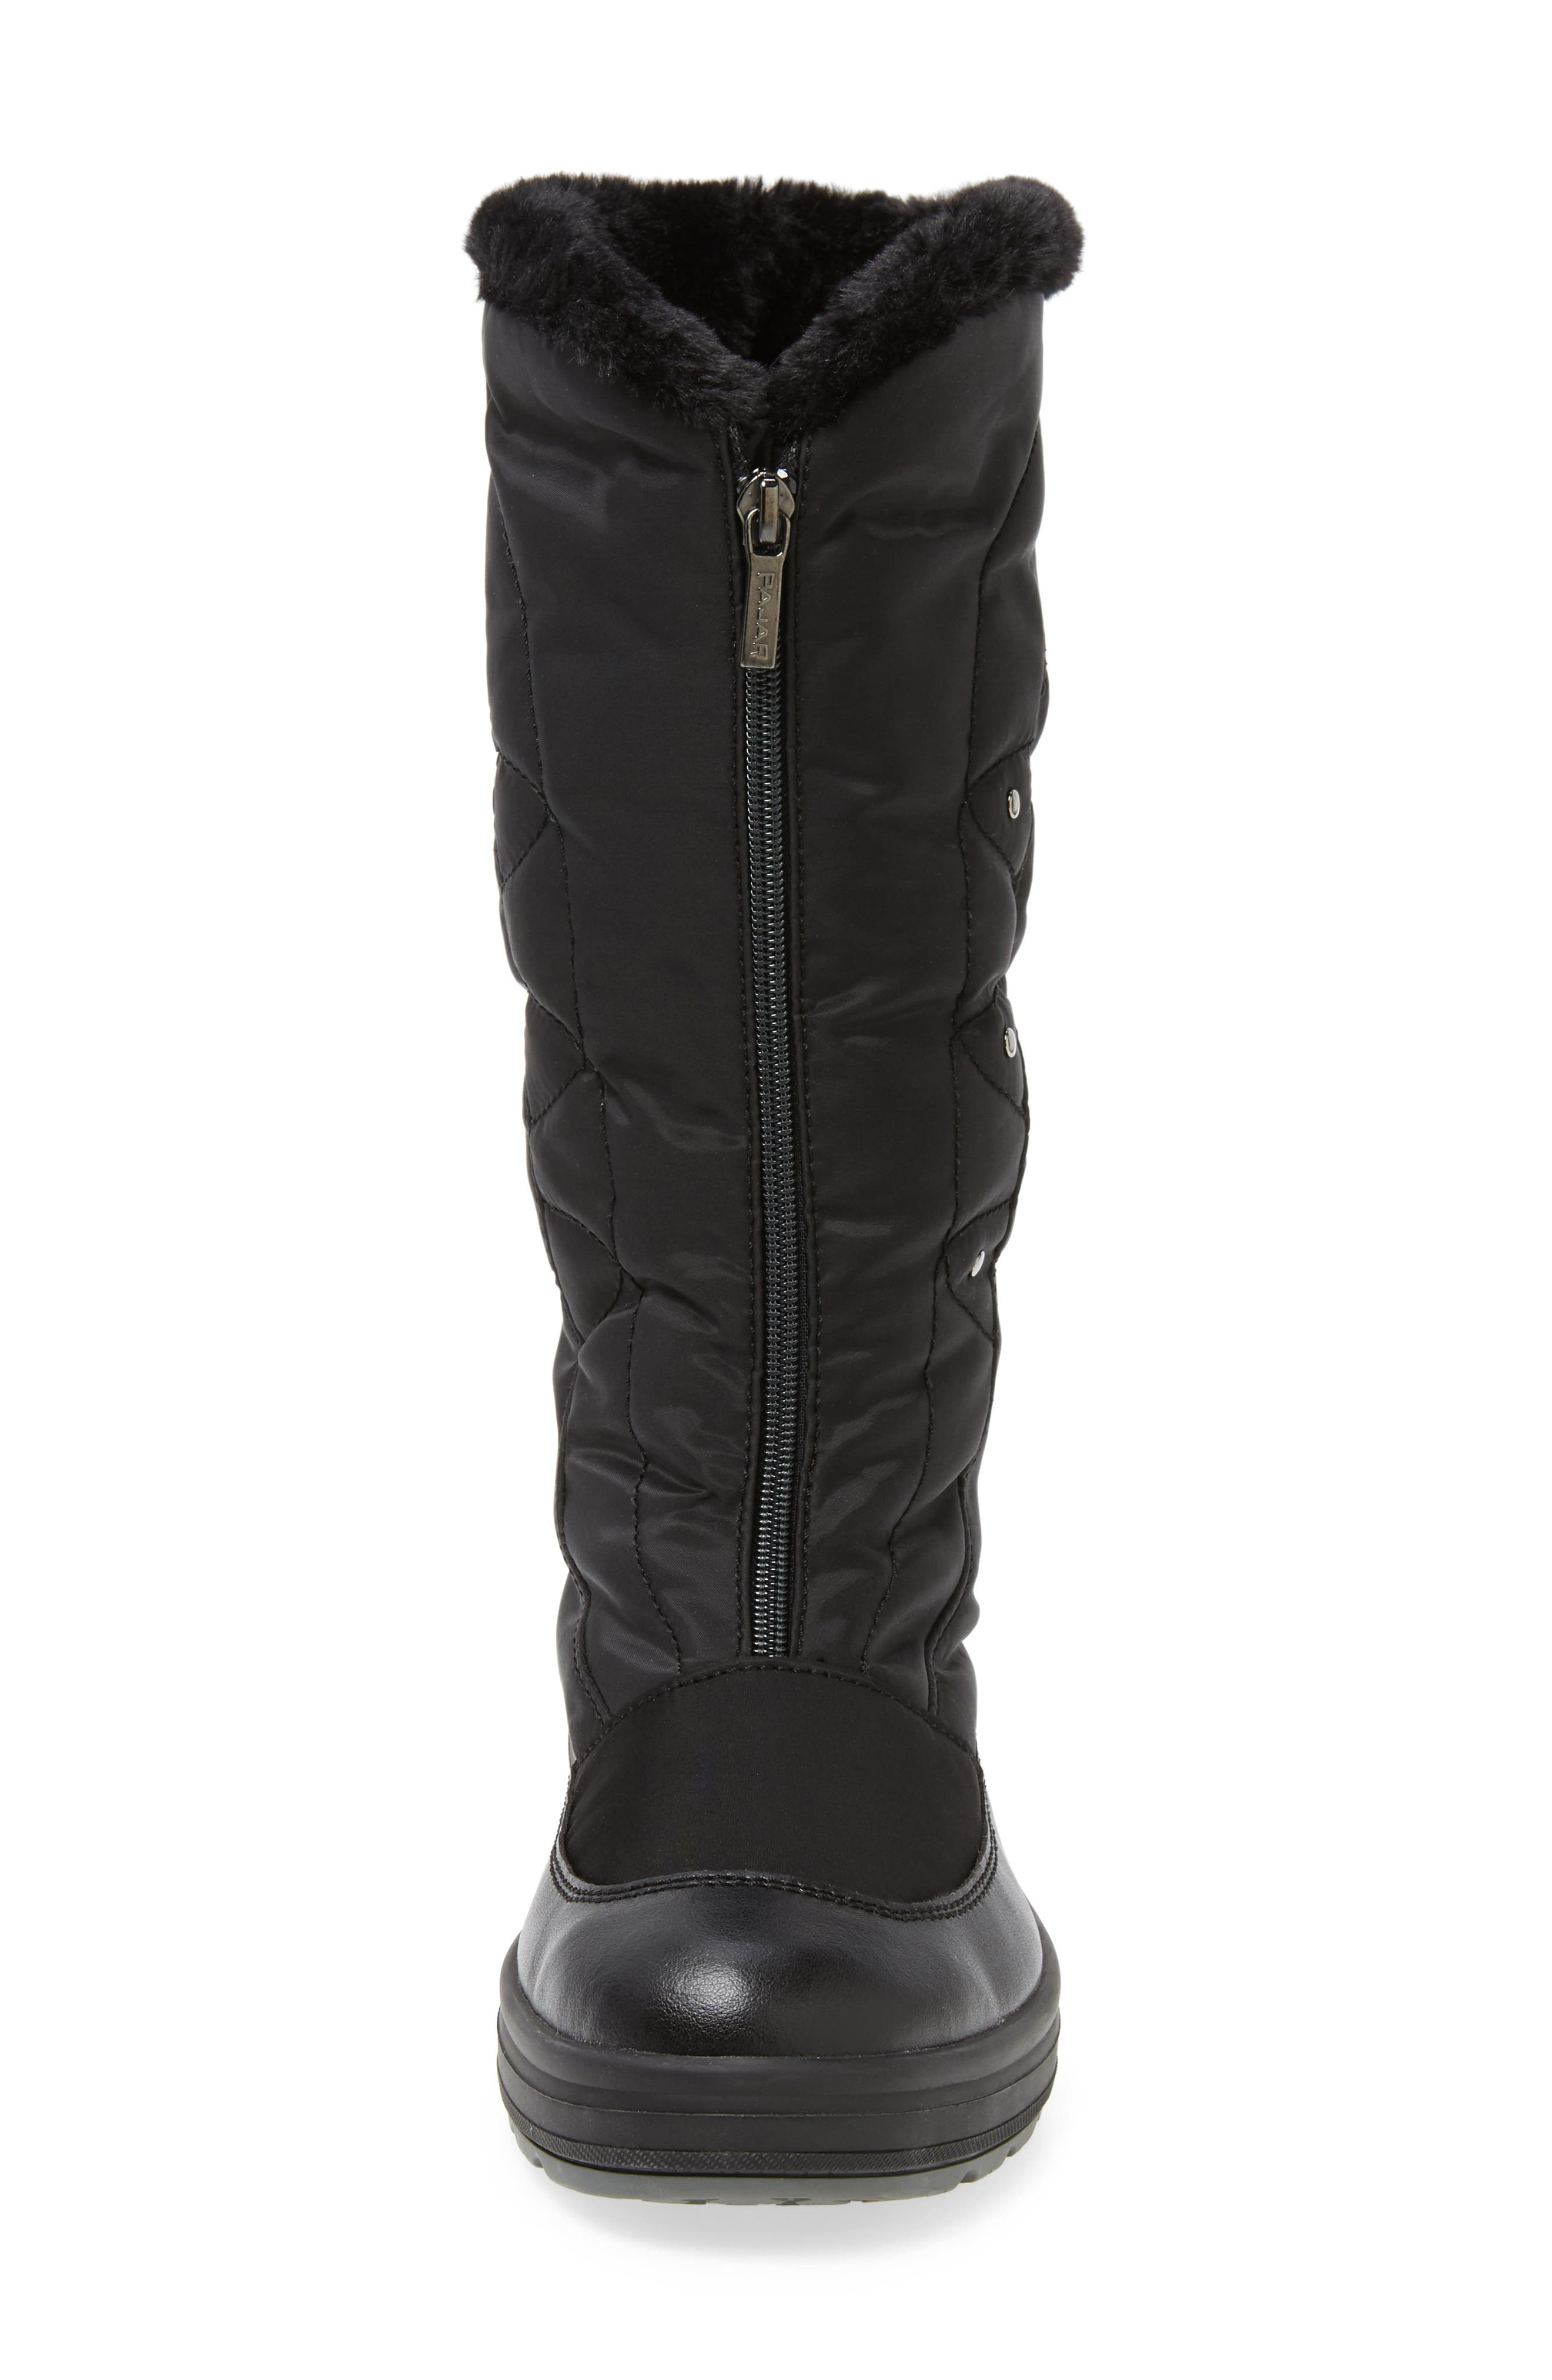 Fusion Weatherproof Boot,                             Alternate thumbnail 4, color,                             001